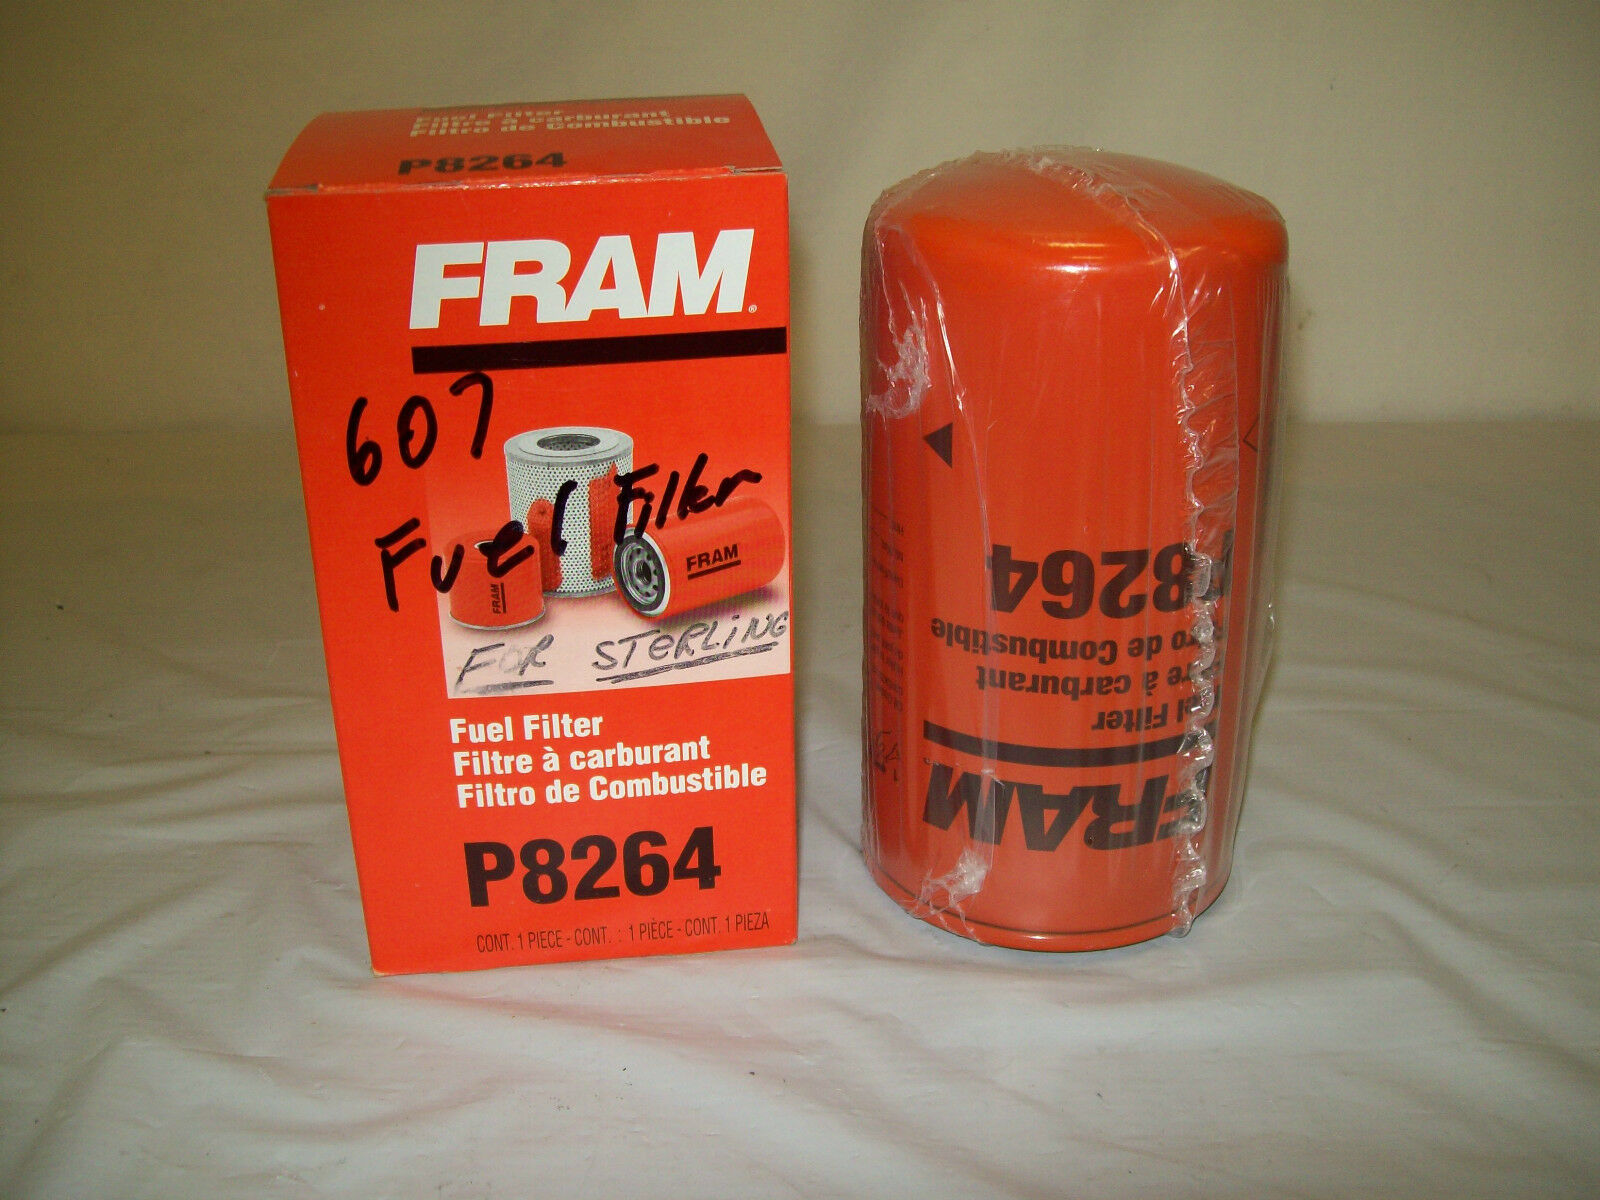 Fram Fuel Filter P 8264 Napa 3626 Wix 33626 2000 Picclick 1 Of 4only Available